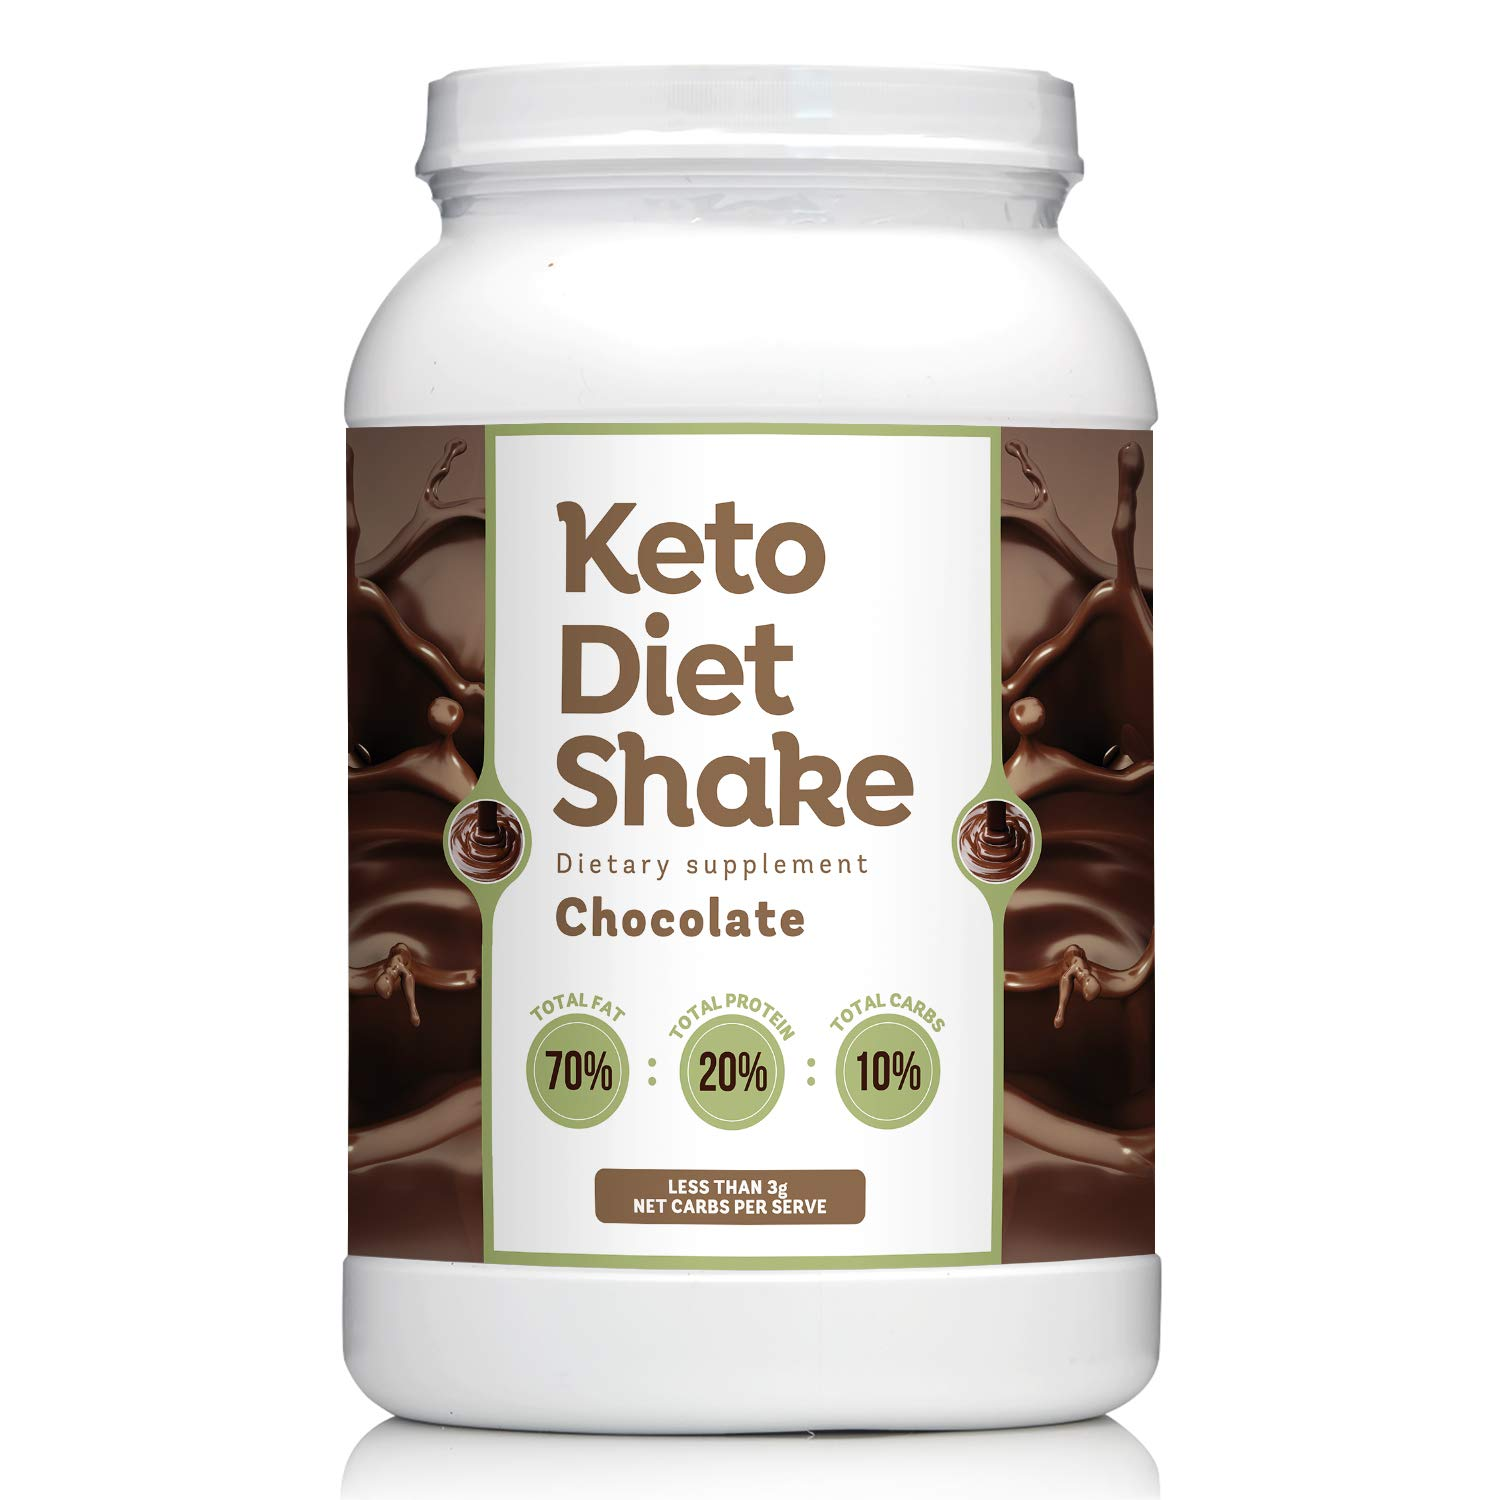 Keto Diet Shake with 70:20:10 Ratio Keeps You In Ketosis-Perfect For Low Carb High Fat Lifestyle - Less than 3g Net Carbs per Serve - Rich Chocolate Flavor - 27 Servings by Keto lifestyle